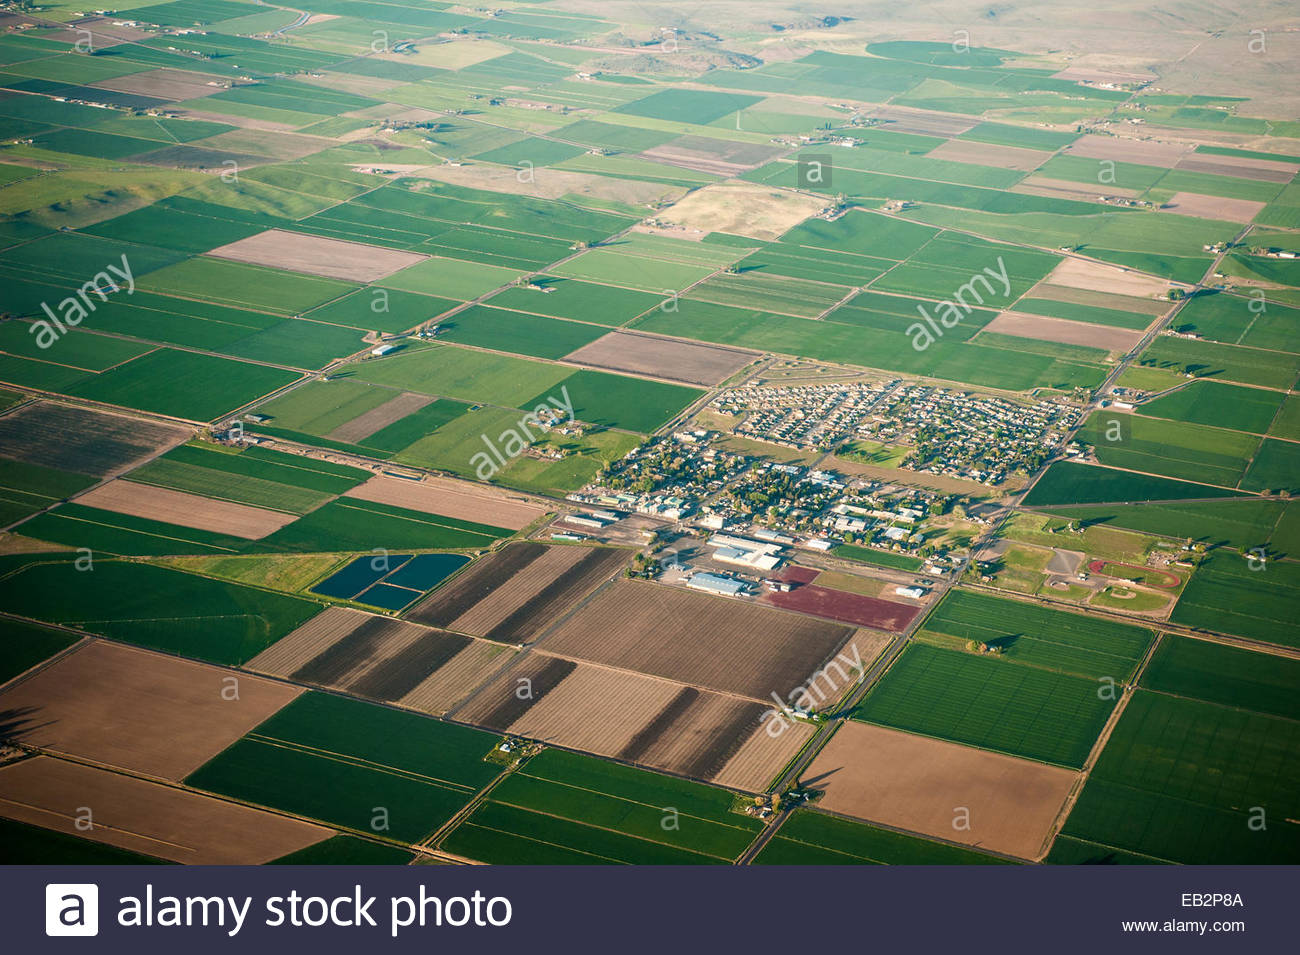 Aerial View Of Farm Land And A Small Farming Community In Oregon